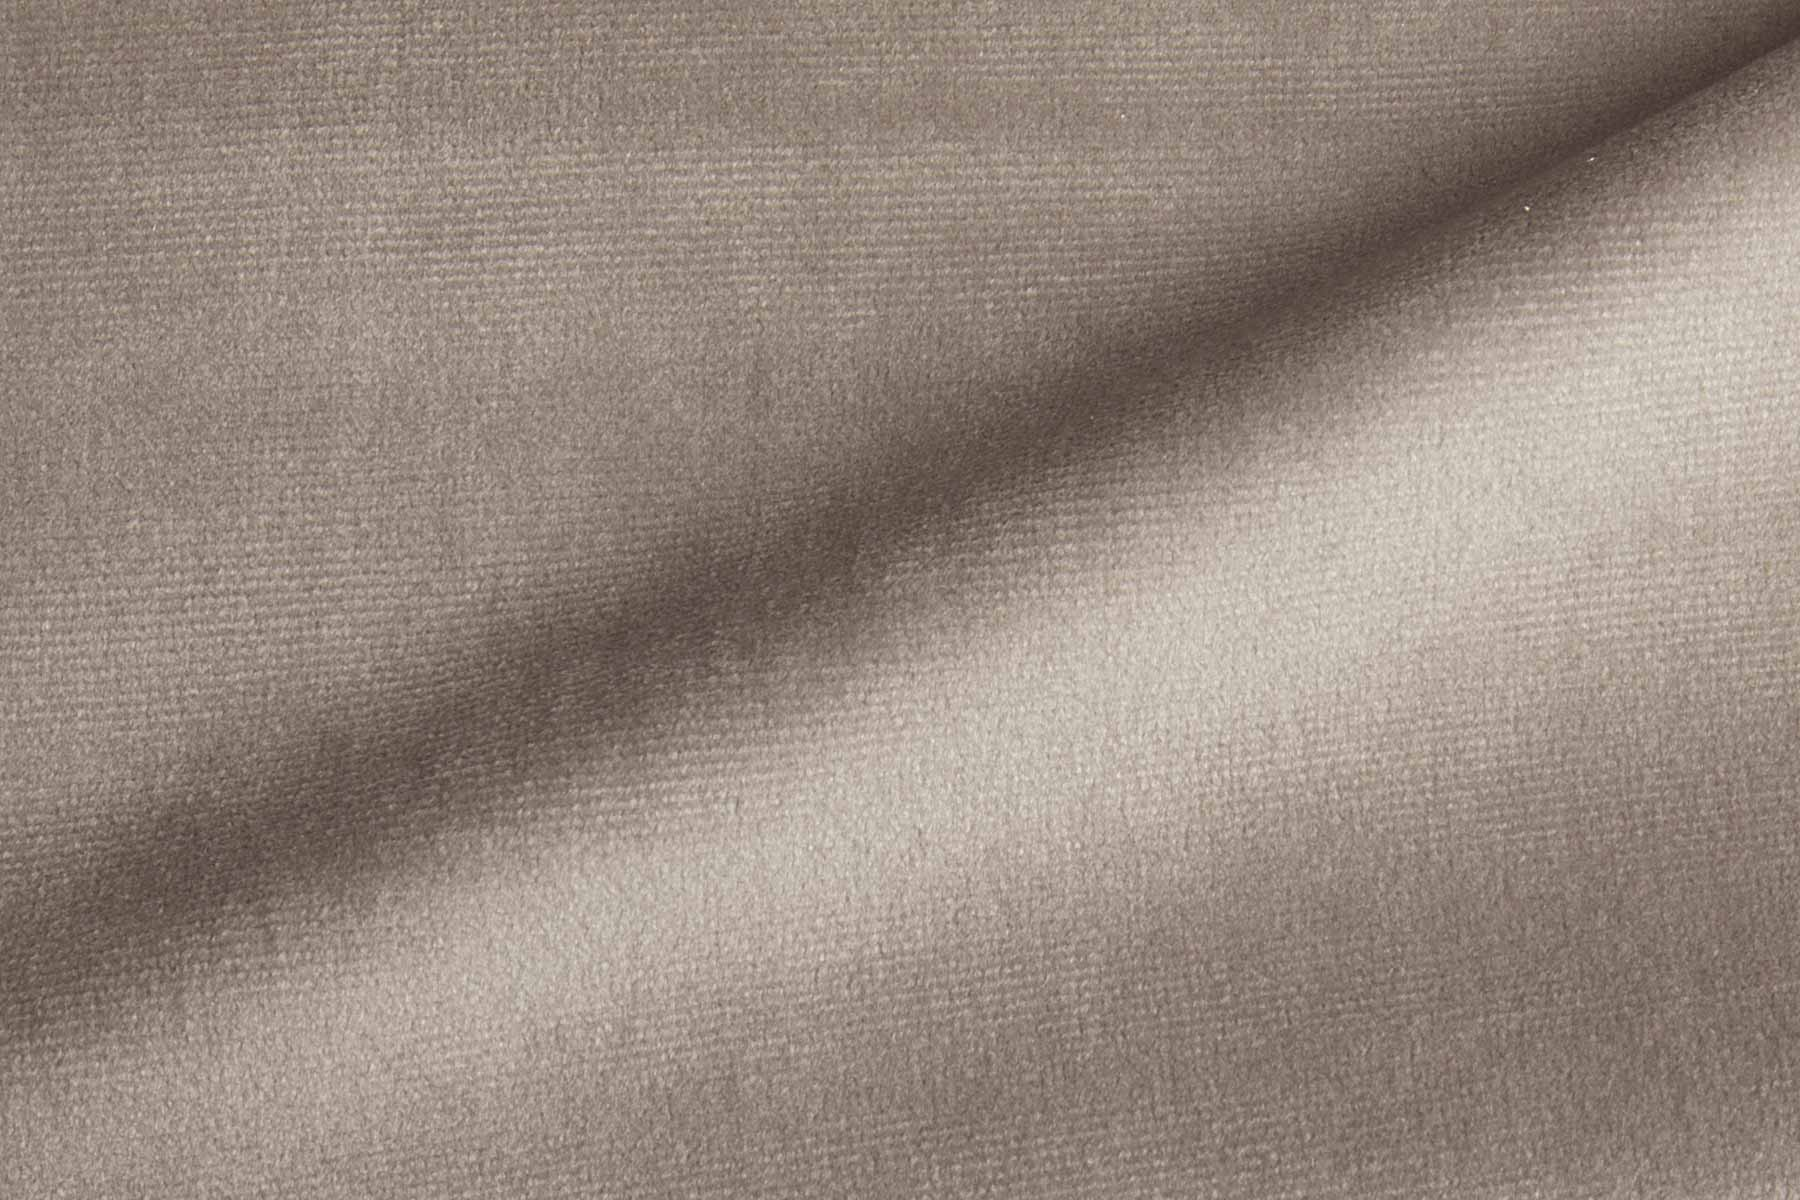 PARIS VELVET KHAKI Fabric by KOKET